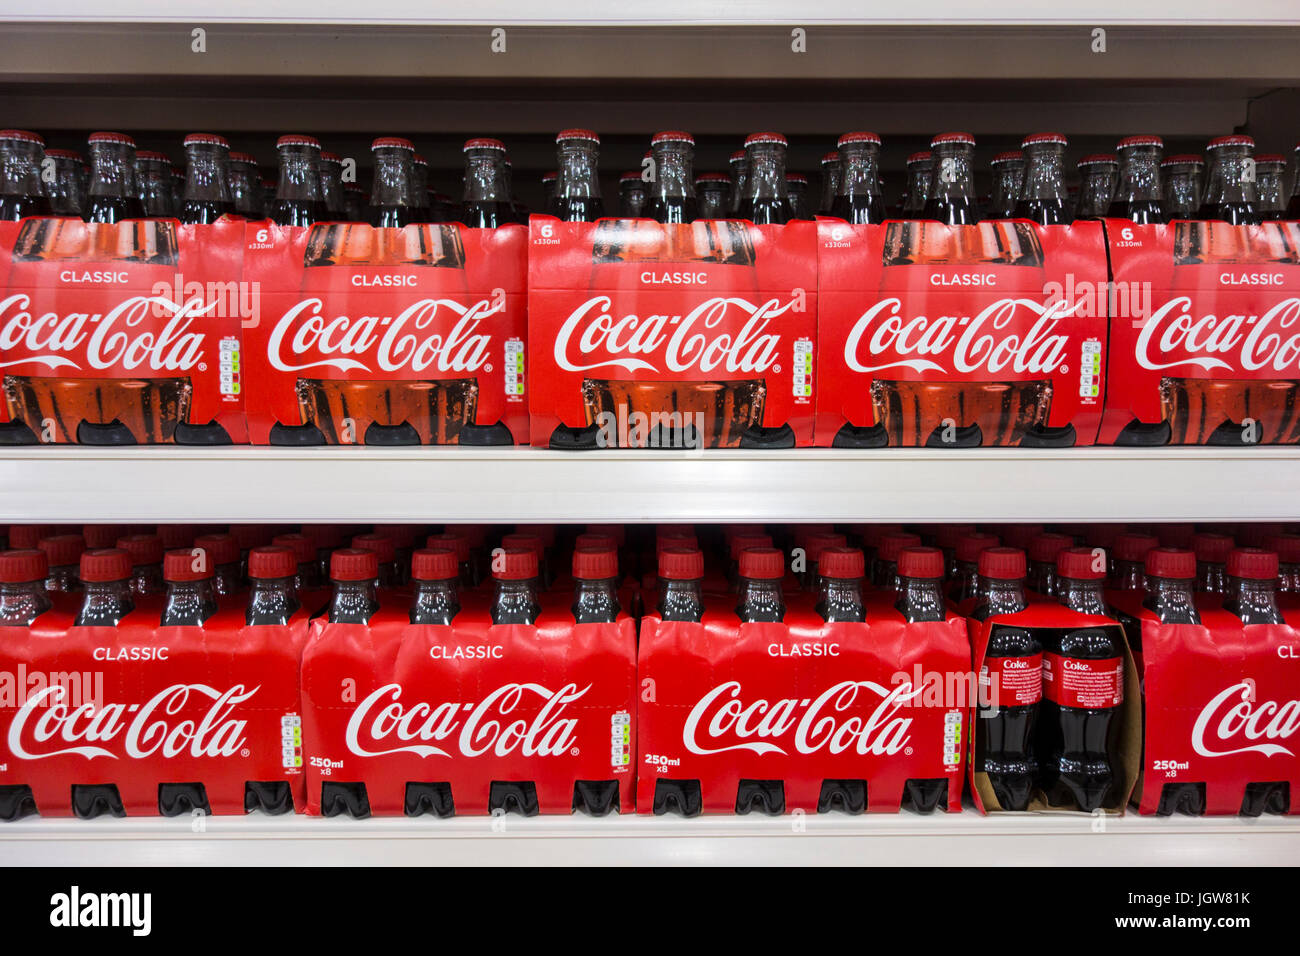 Multi-pack glass and plastic bottles of Coca Cola / Coke for sale on a supermarket shelf in the UK - Stock Image